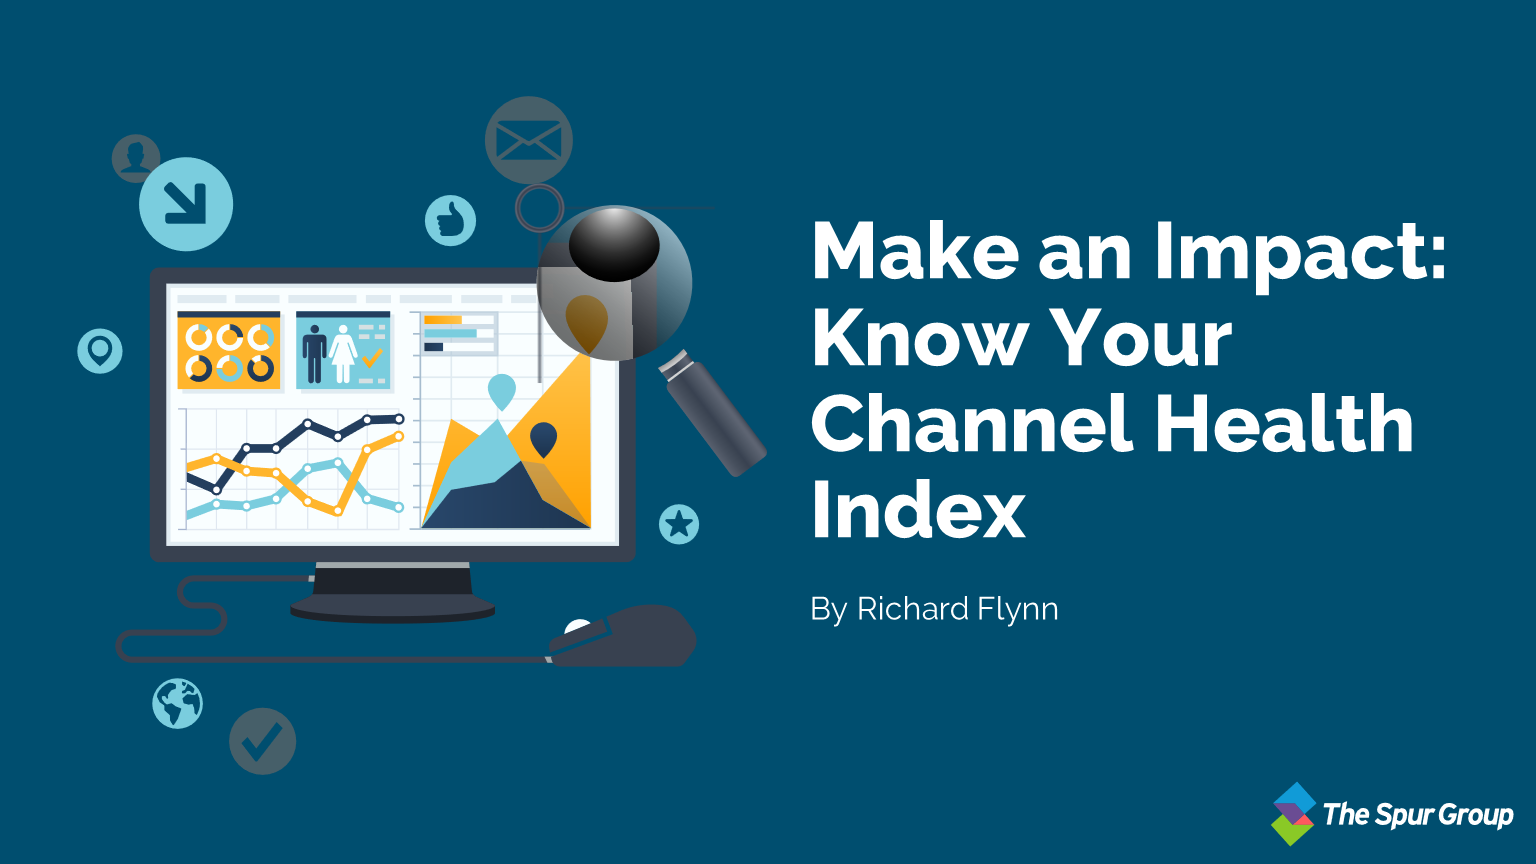 Make an Impact: Know Your Channel Health Index Featured Image